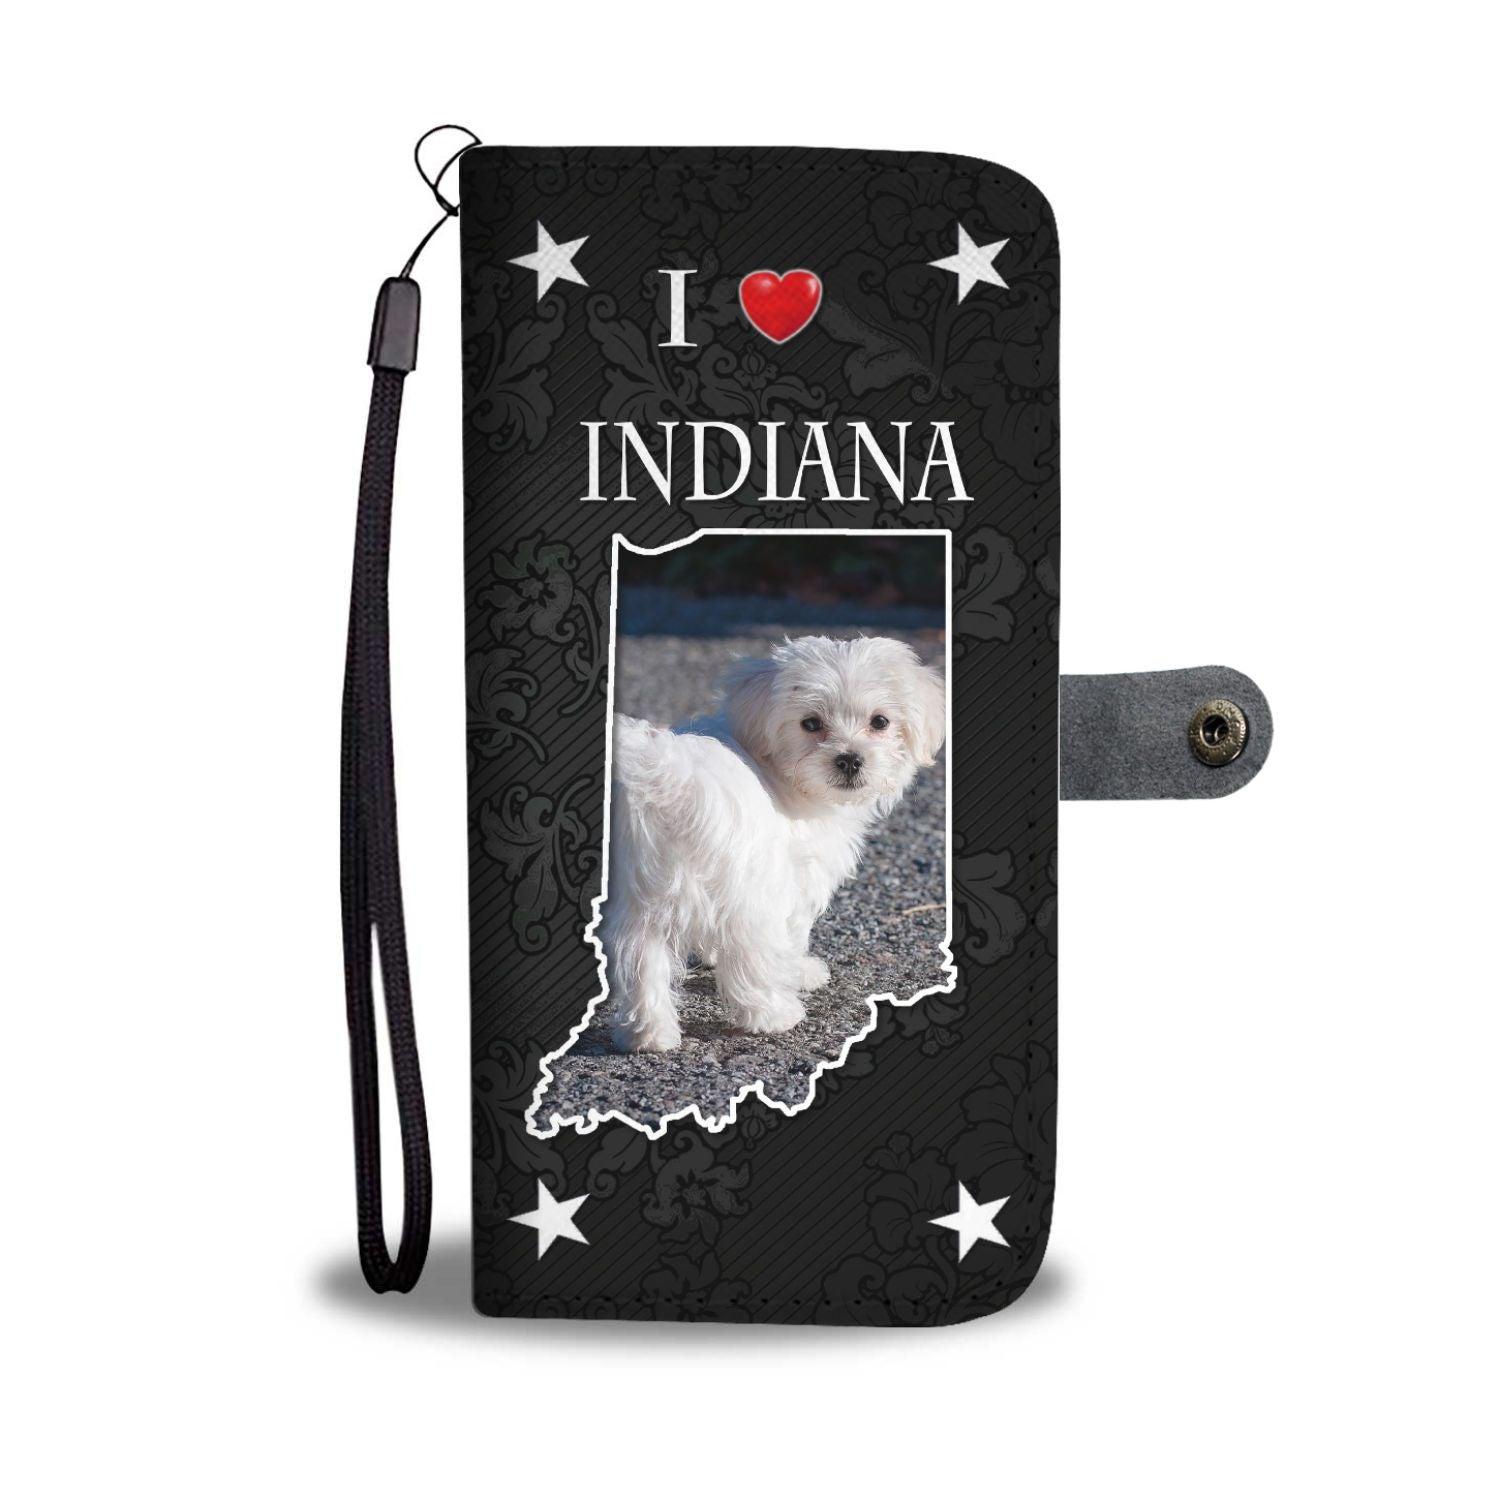 Cute Maltese Dog On Black Print Wallet Case-Free Shipping-IN State - The Horse Barn